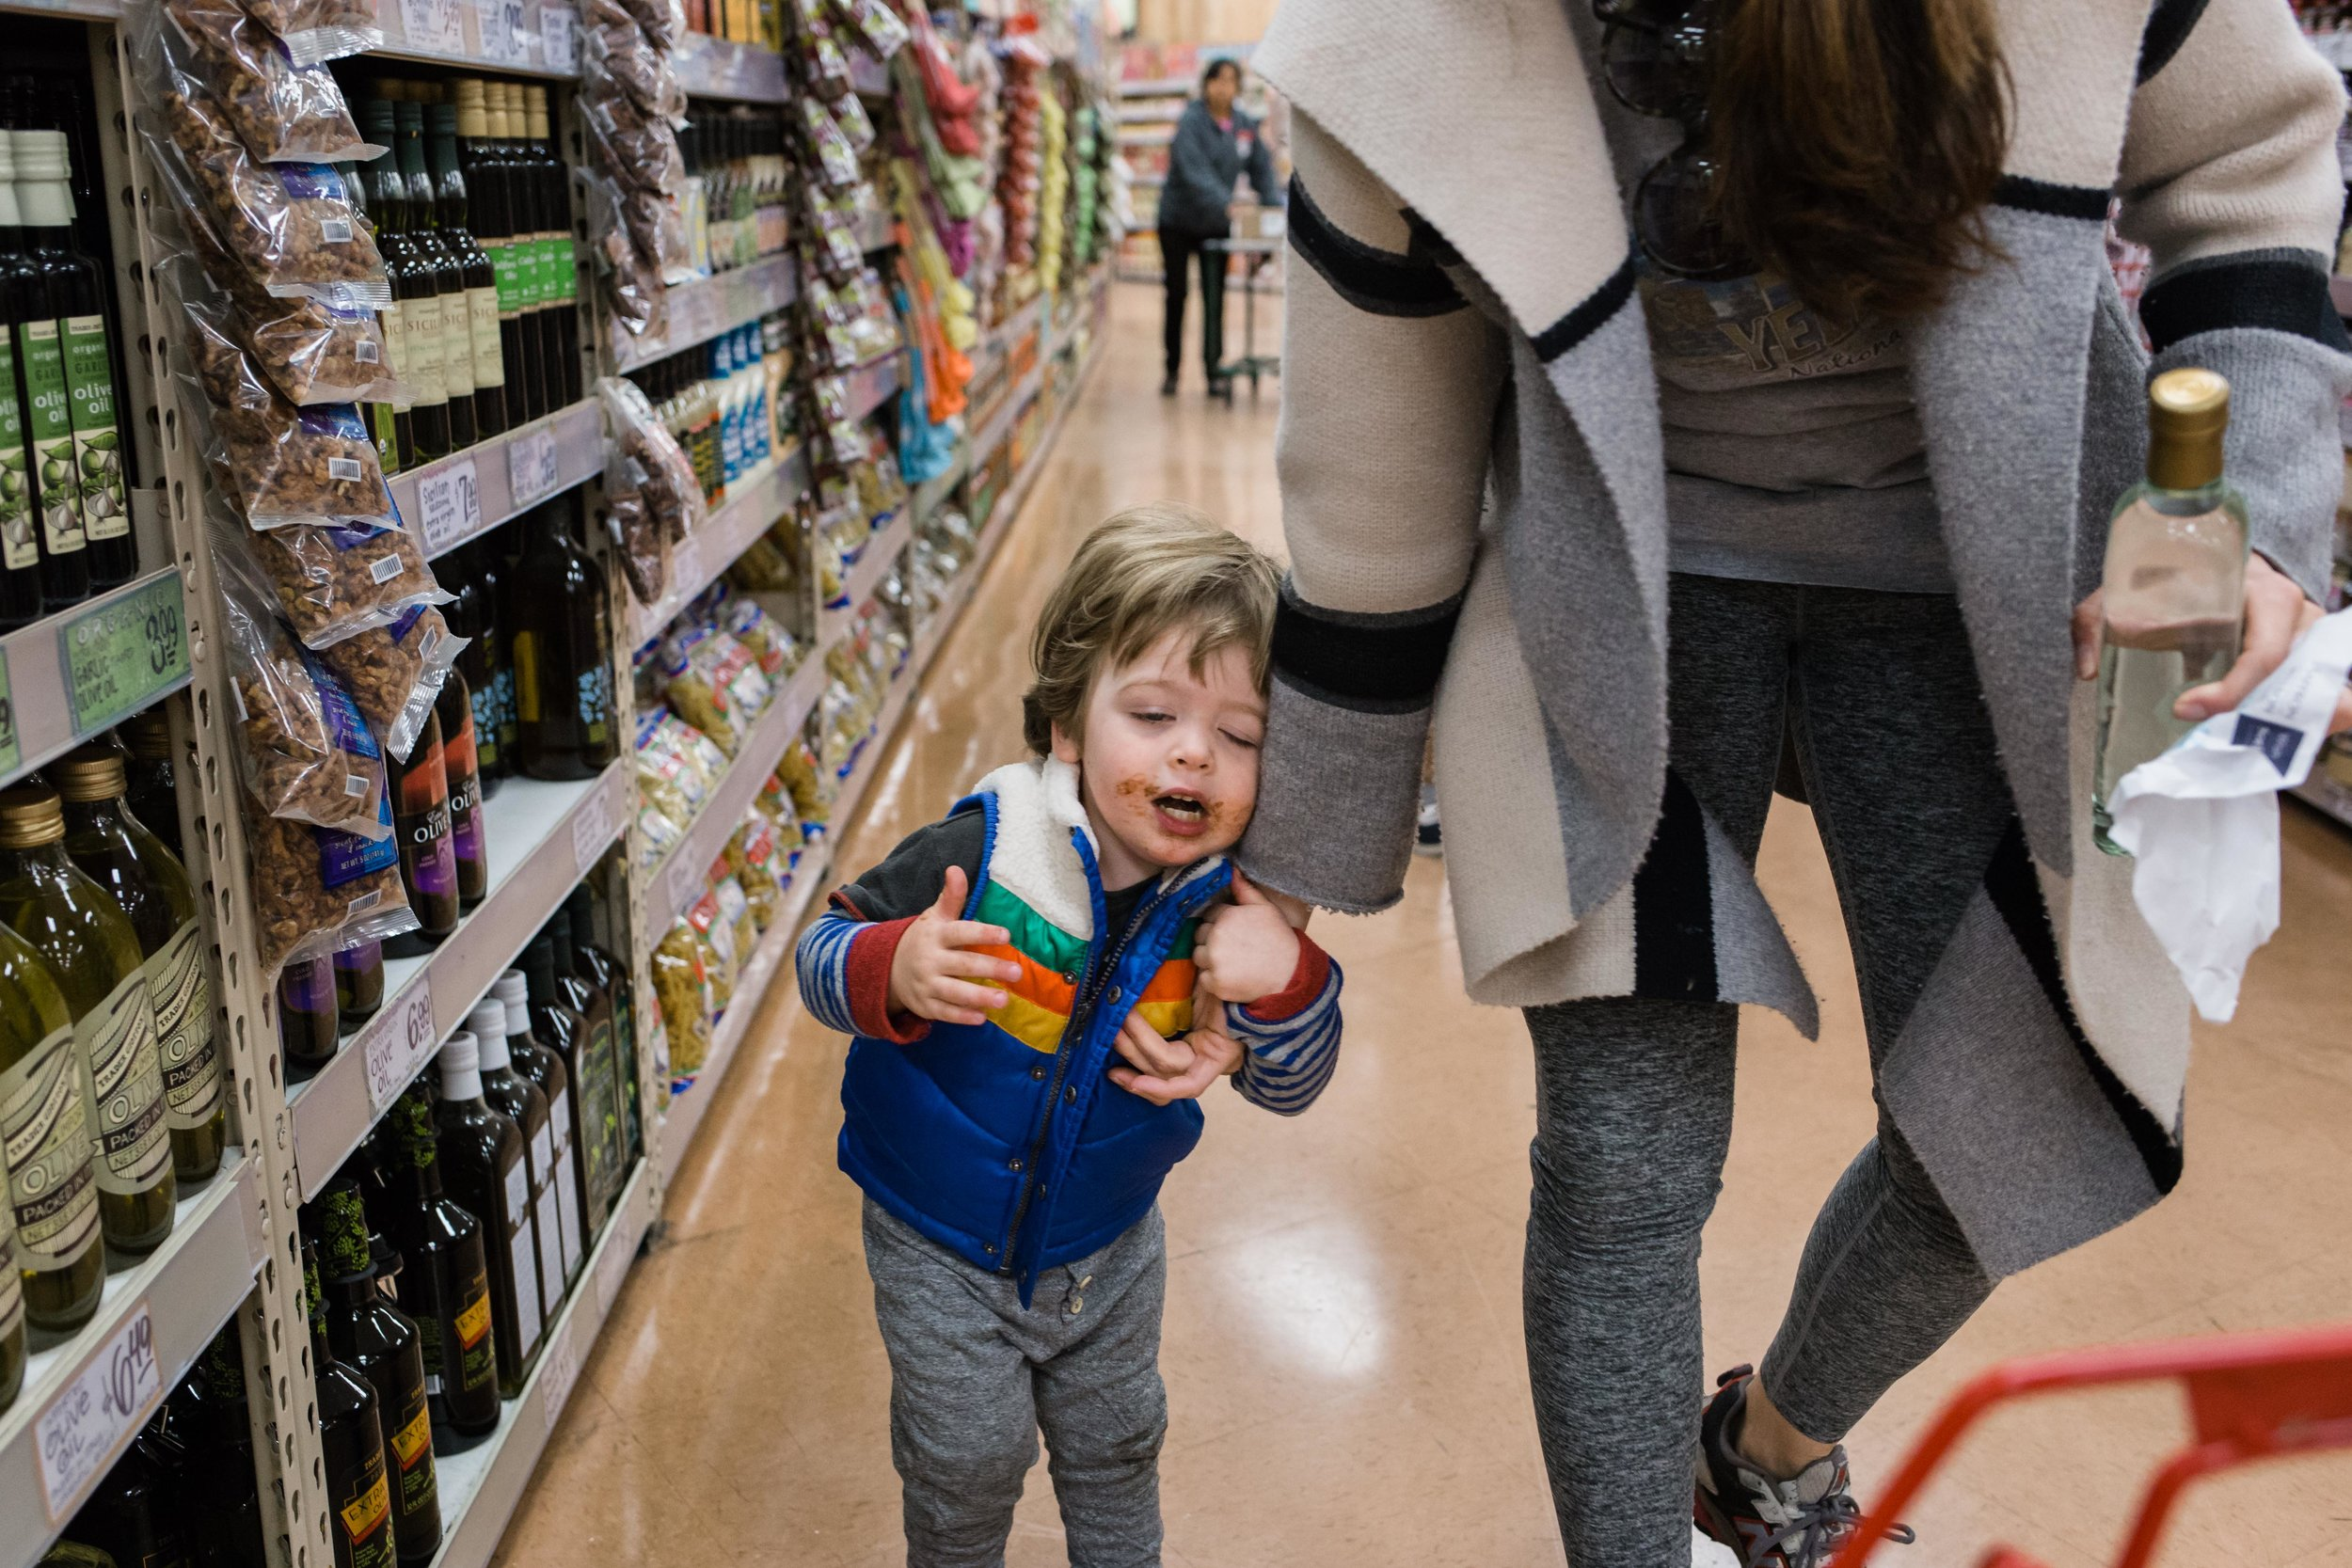 Cole at the store